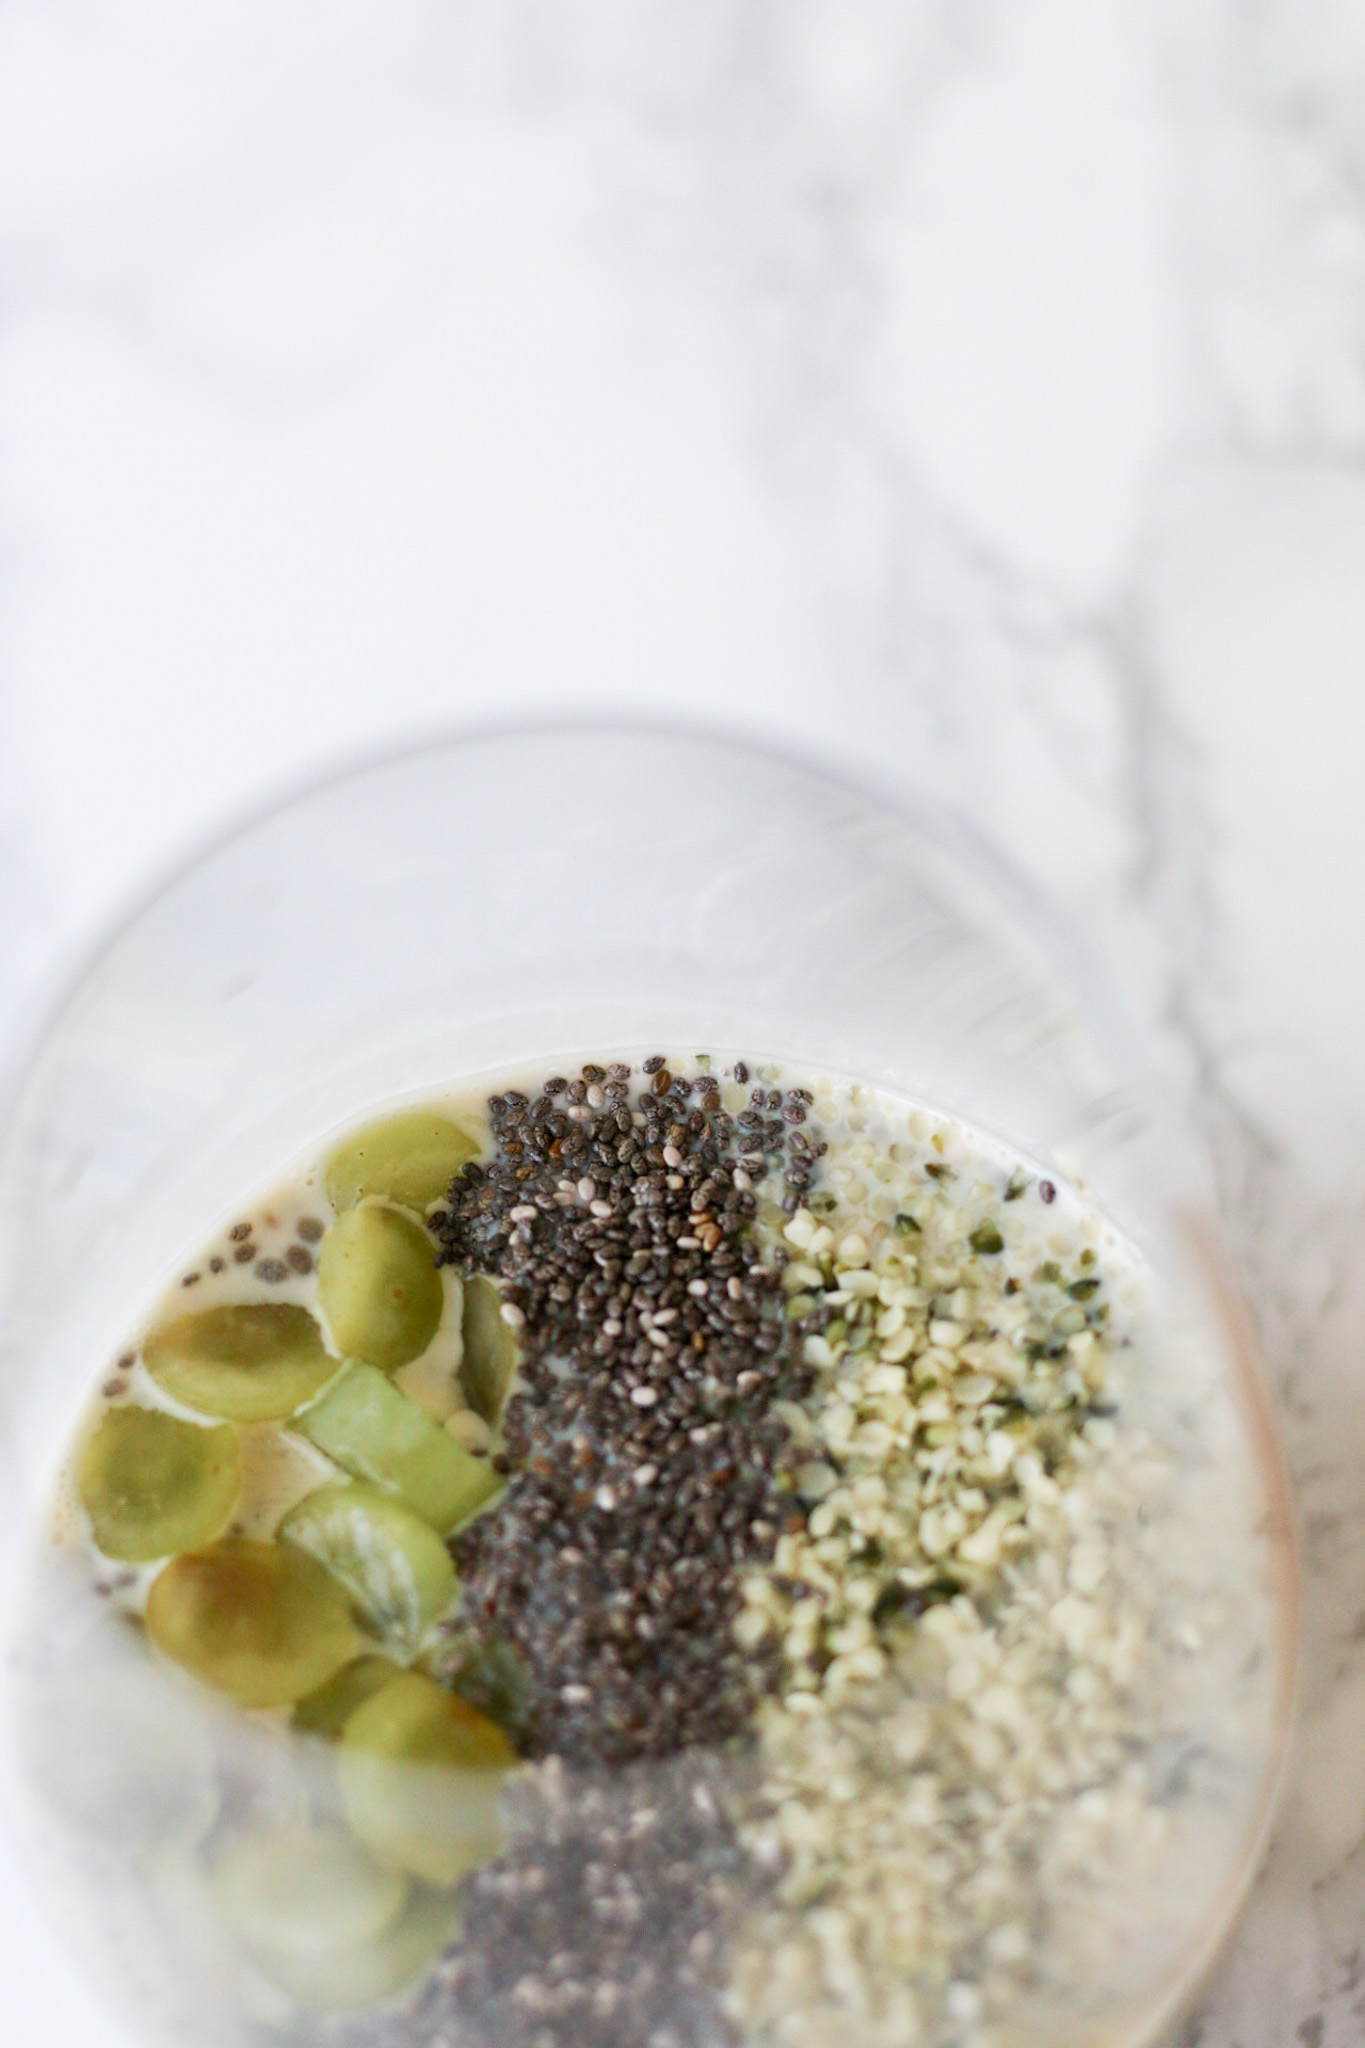 OAT MILK CHIA SEED PUDDING (VEGAN)